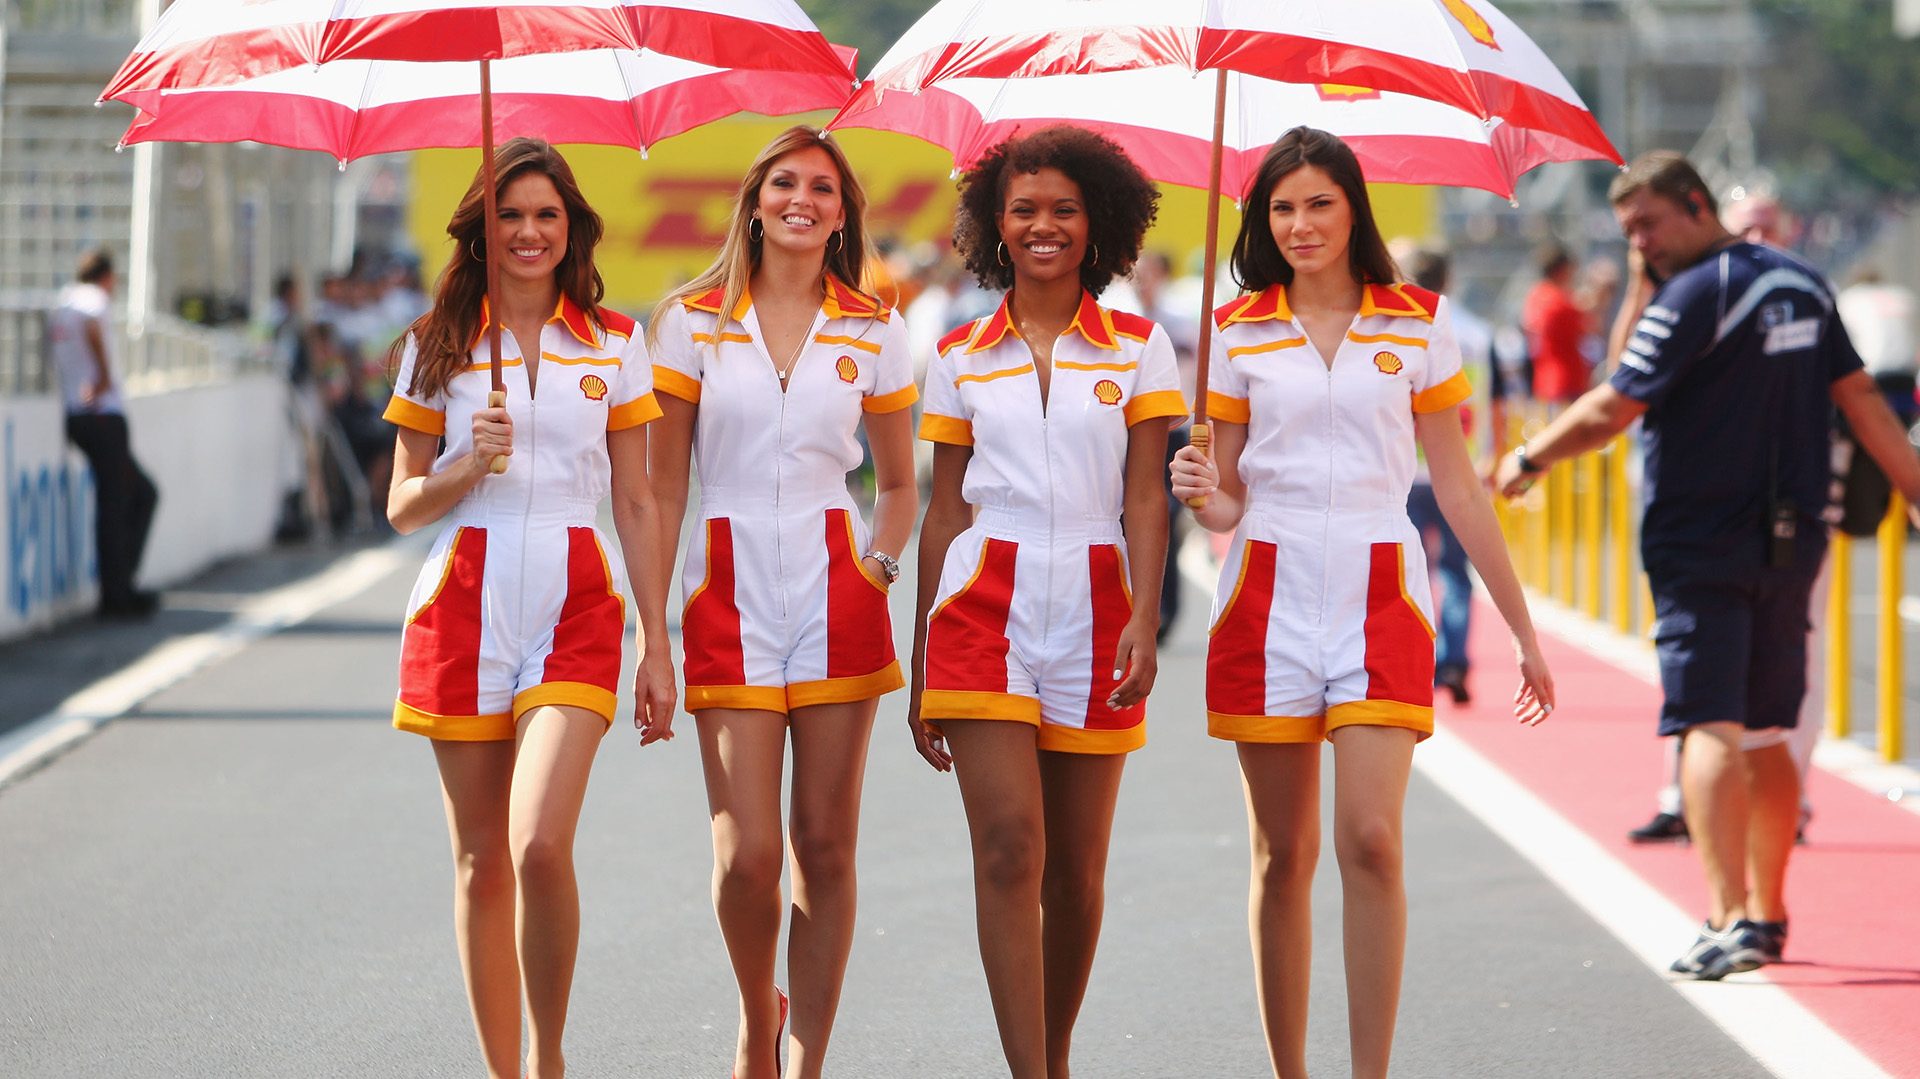 Re: LAS CHICAS DE LA FÓRMULA 1 (by @Scuderia_Fangio)